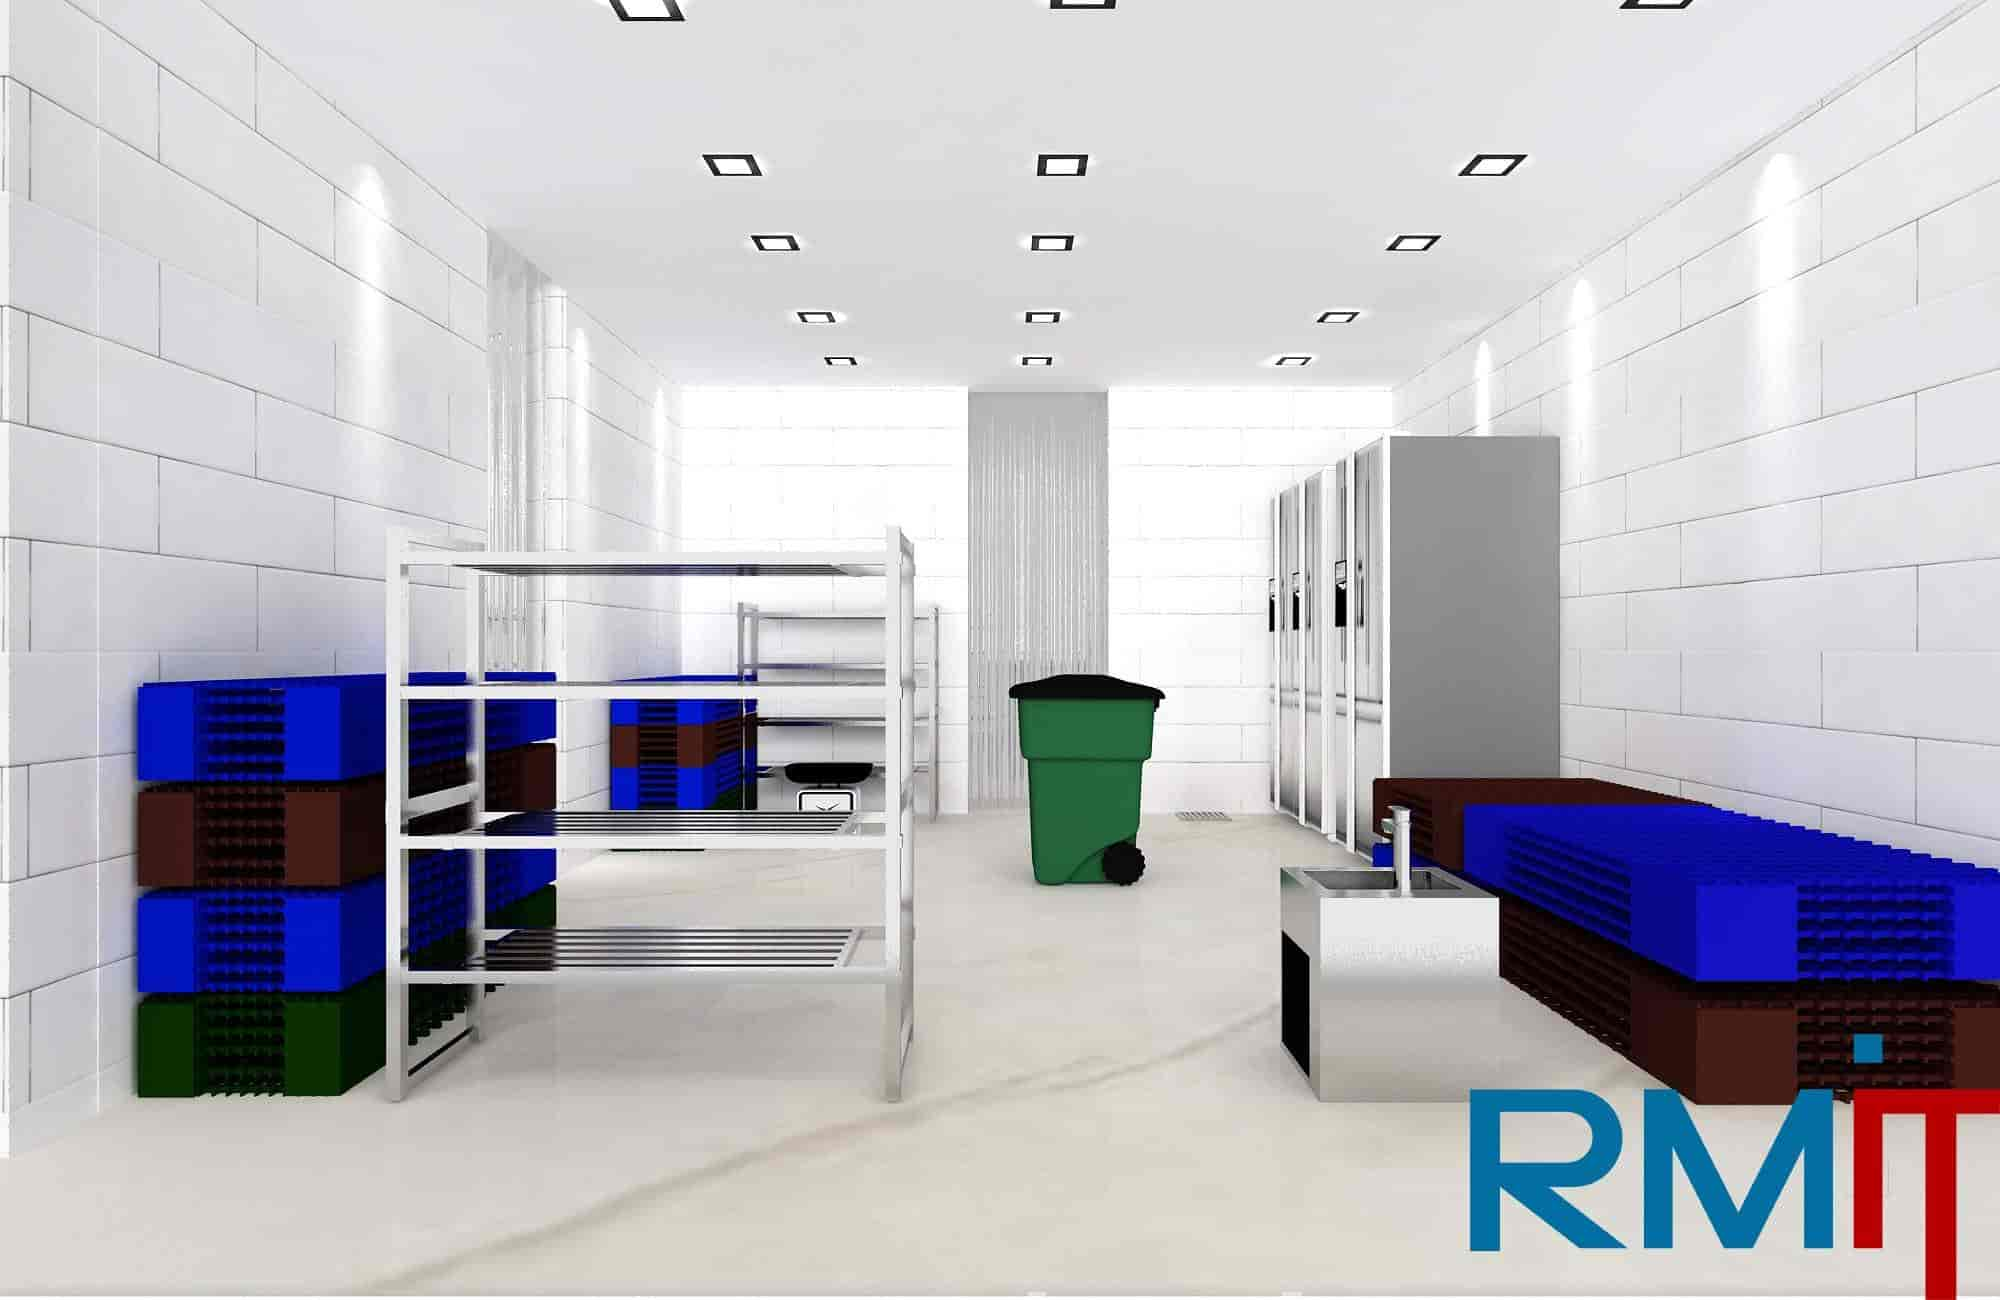 Rmit Pvt Ltd Photos Kolkata Pictures Images Gallery Justdial